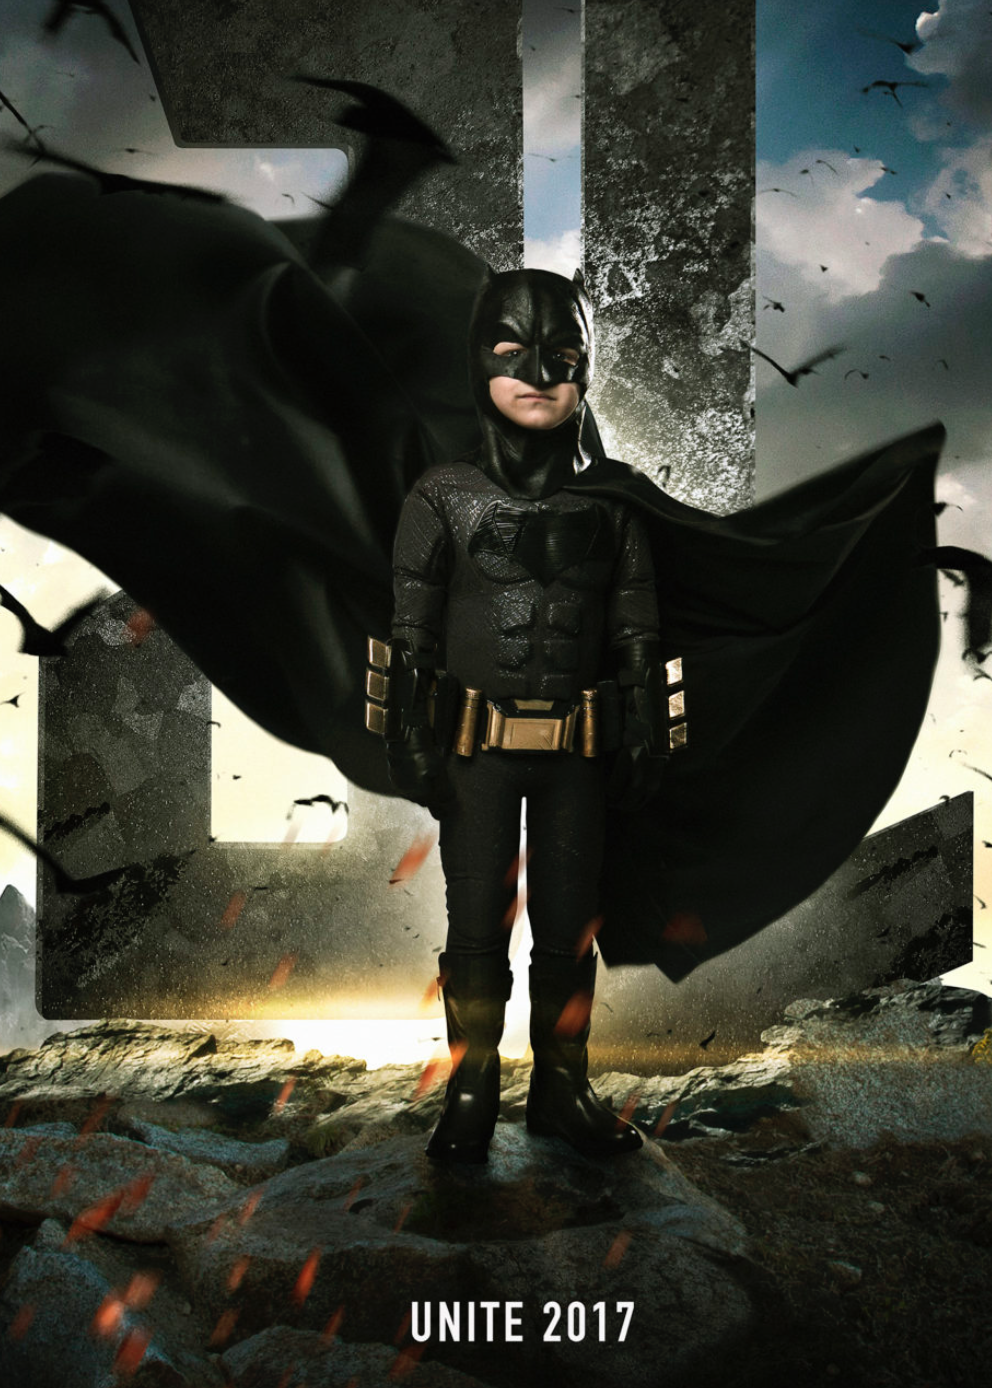 Five-year-old Simon Fuller, diagnosed with neuroblastoma, was featured as the Justice League's Batman. Image courtesy of Josh Rossi